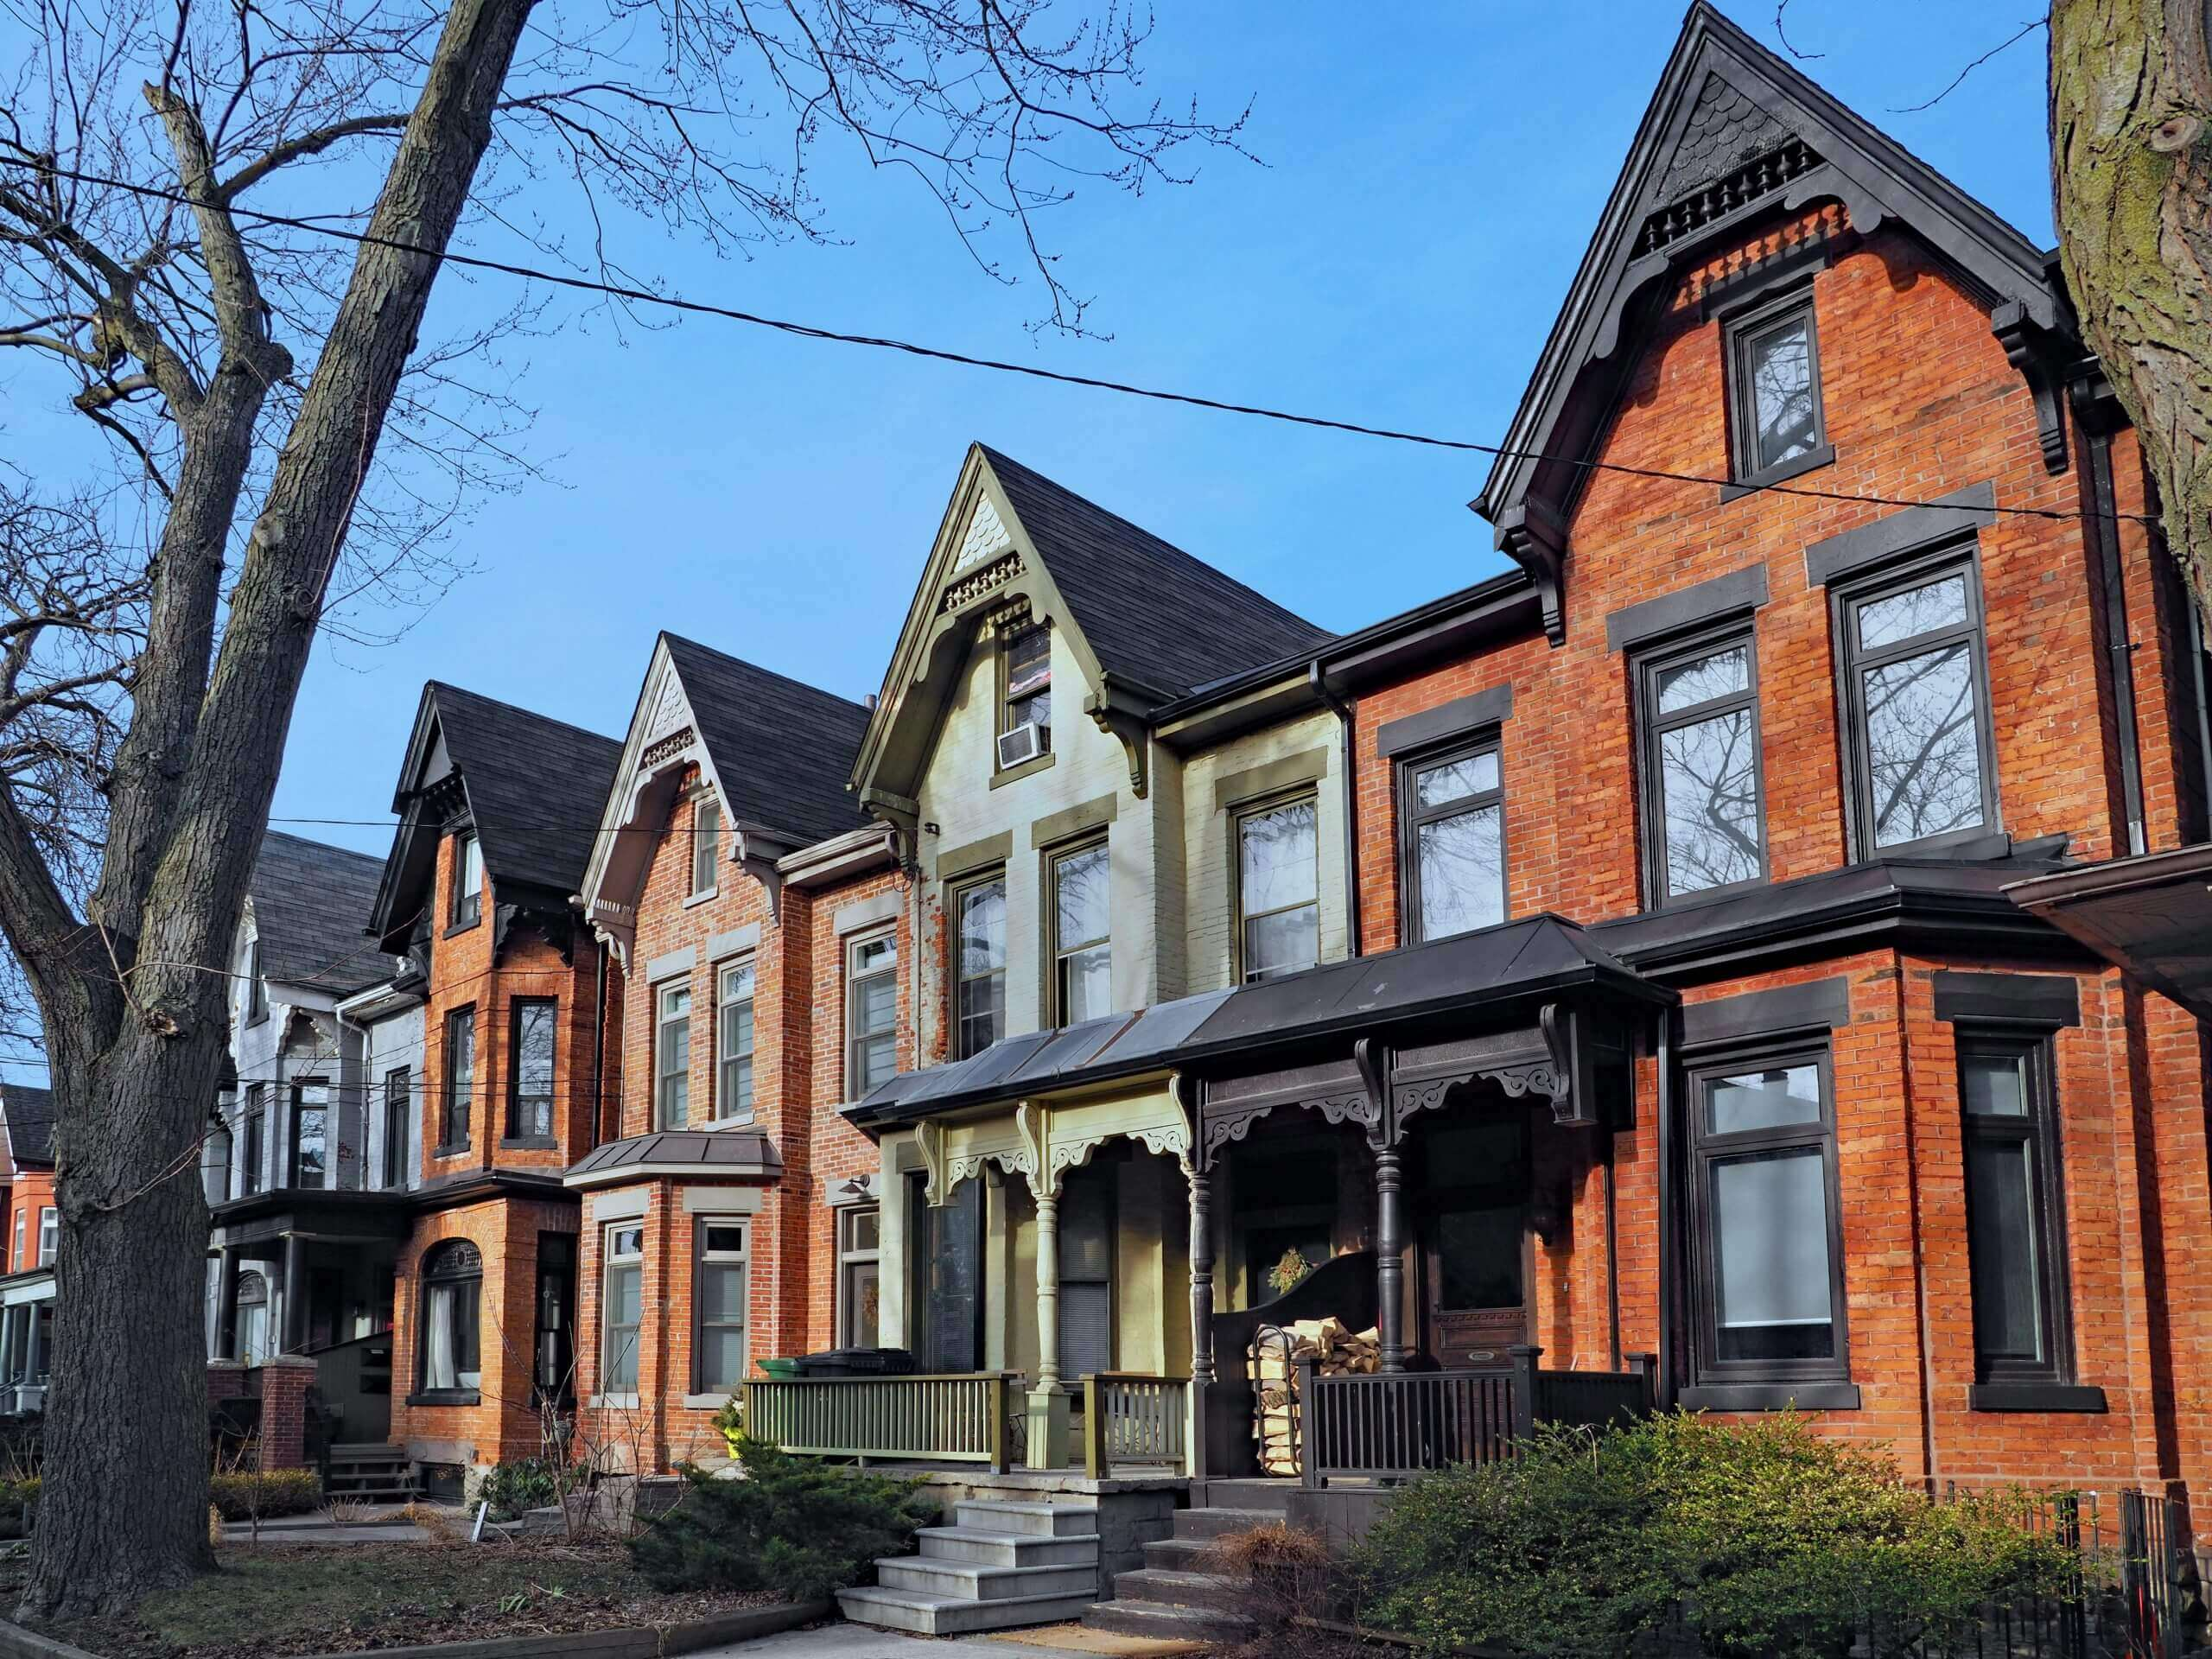 Architecture In Toronto: Iconic Styles Of This Amazing City